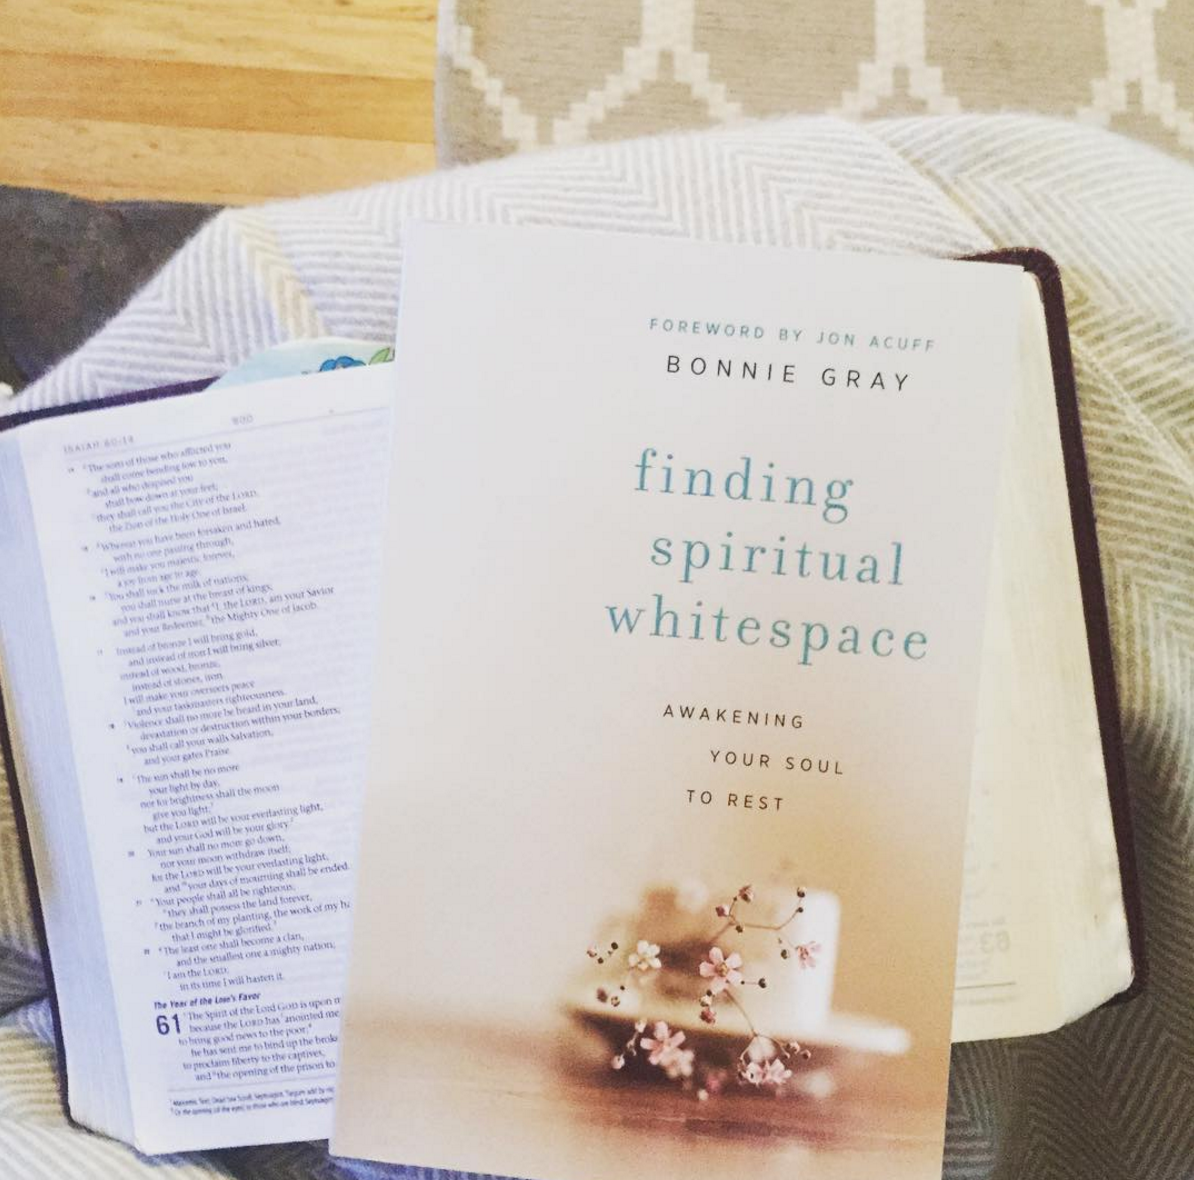 Get Finding Spiritual Whitespace for just $1.99 on Amazon